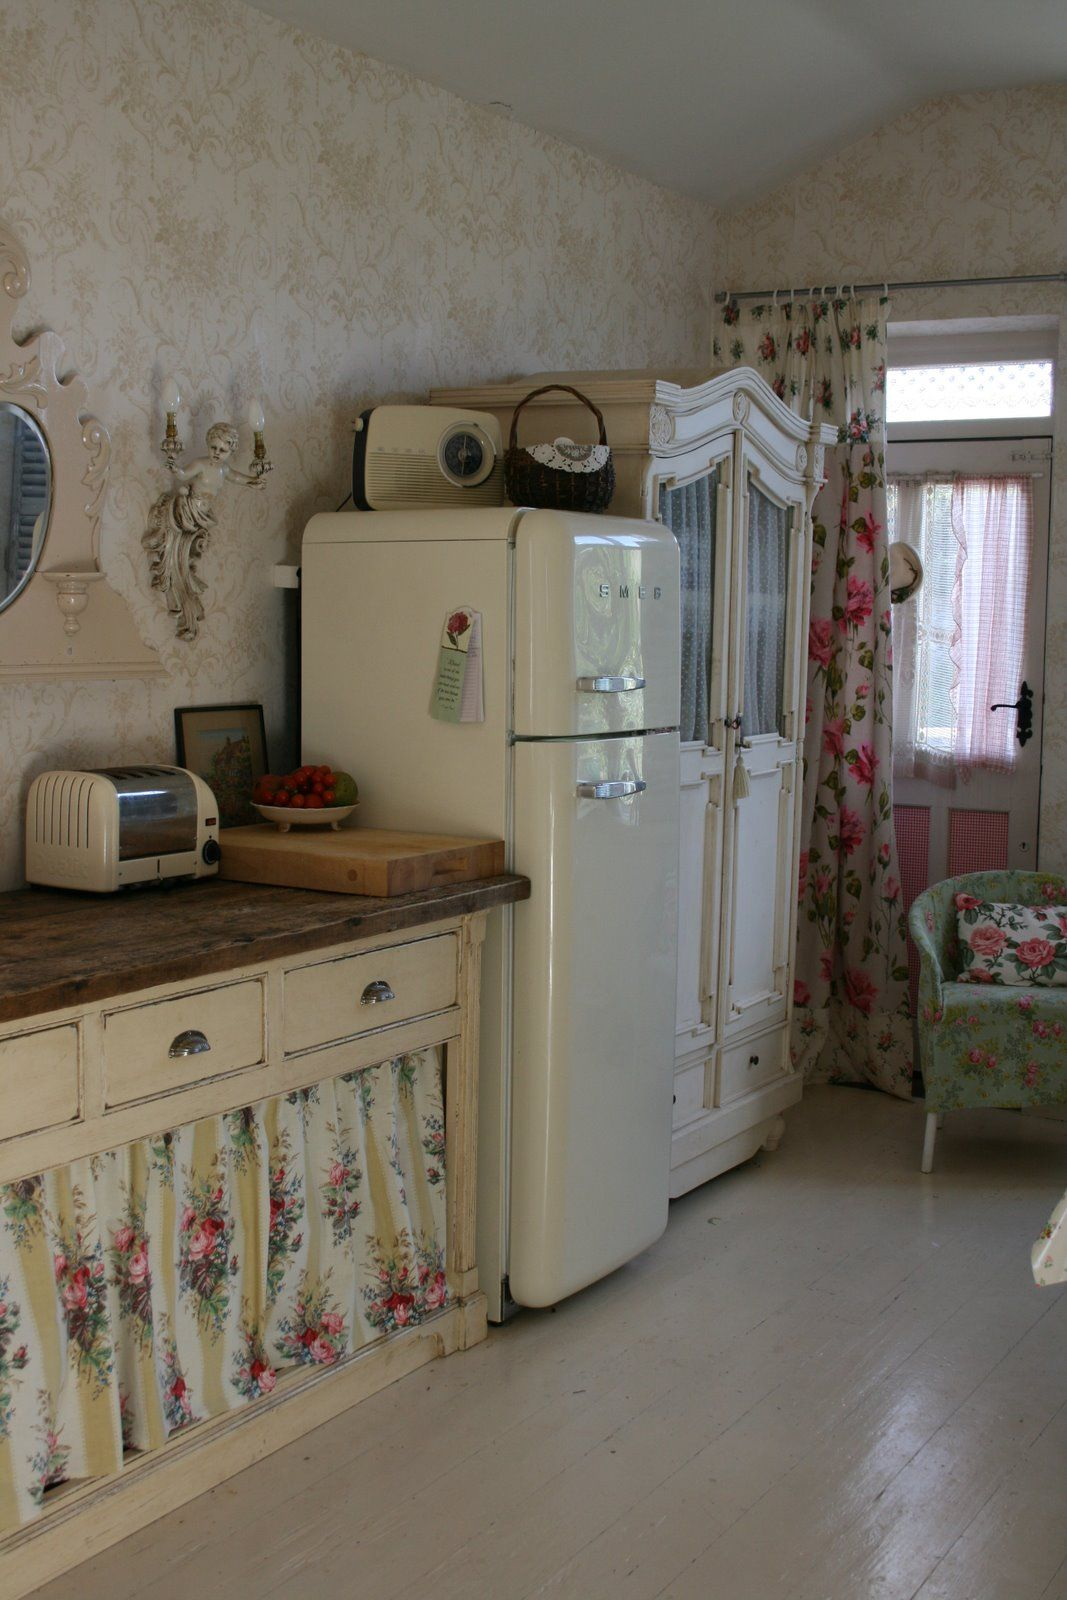 cute kitchen gadgets bistro decorating ideas nostalgia at the stone house time for a change